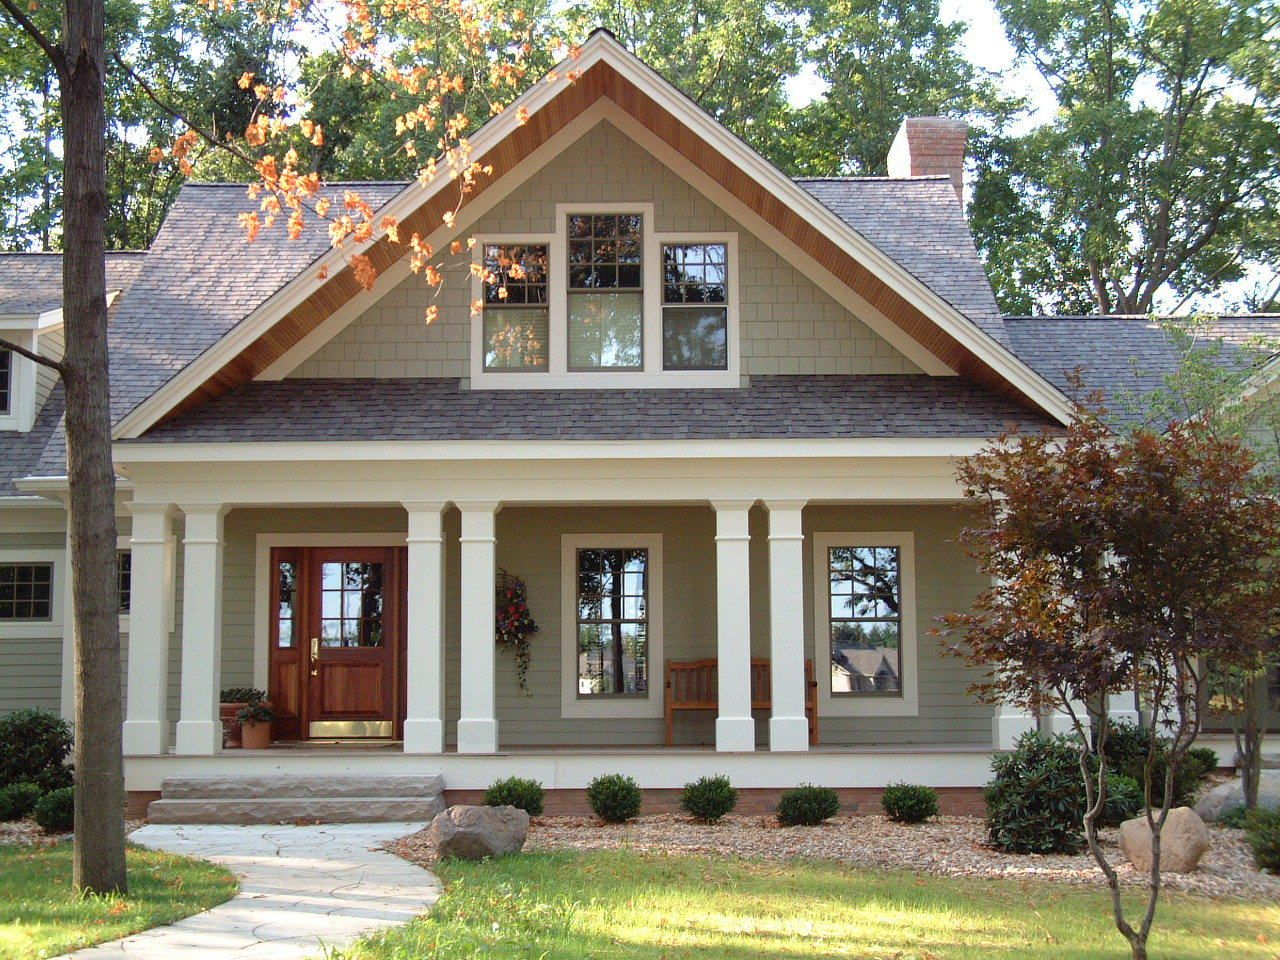 NEW CUSTOM HOME,SHINGLE STYLE, CRAFTSMAN STYLE HOUSE PLAN